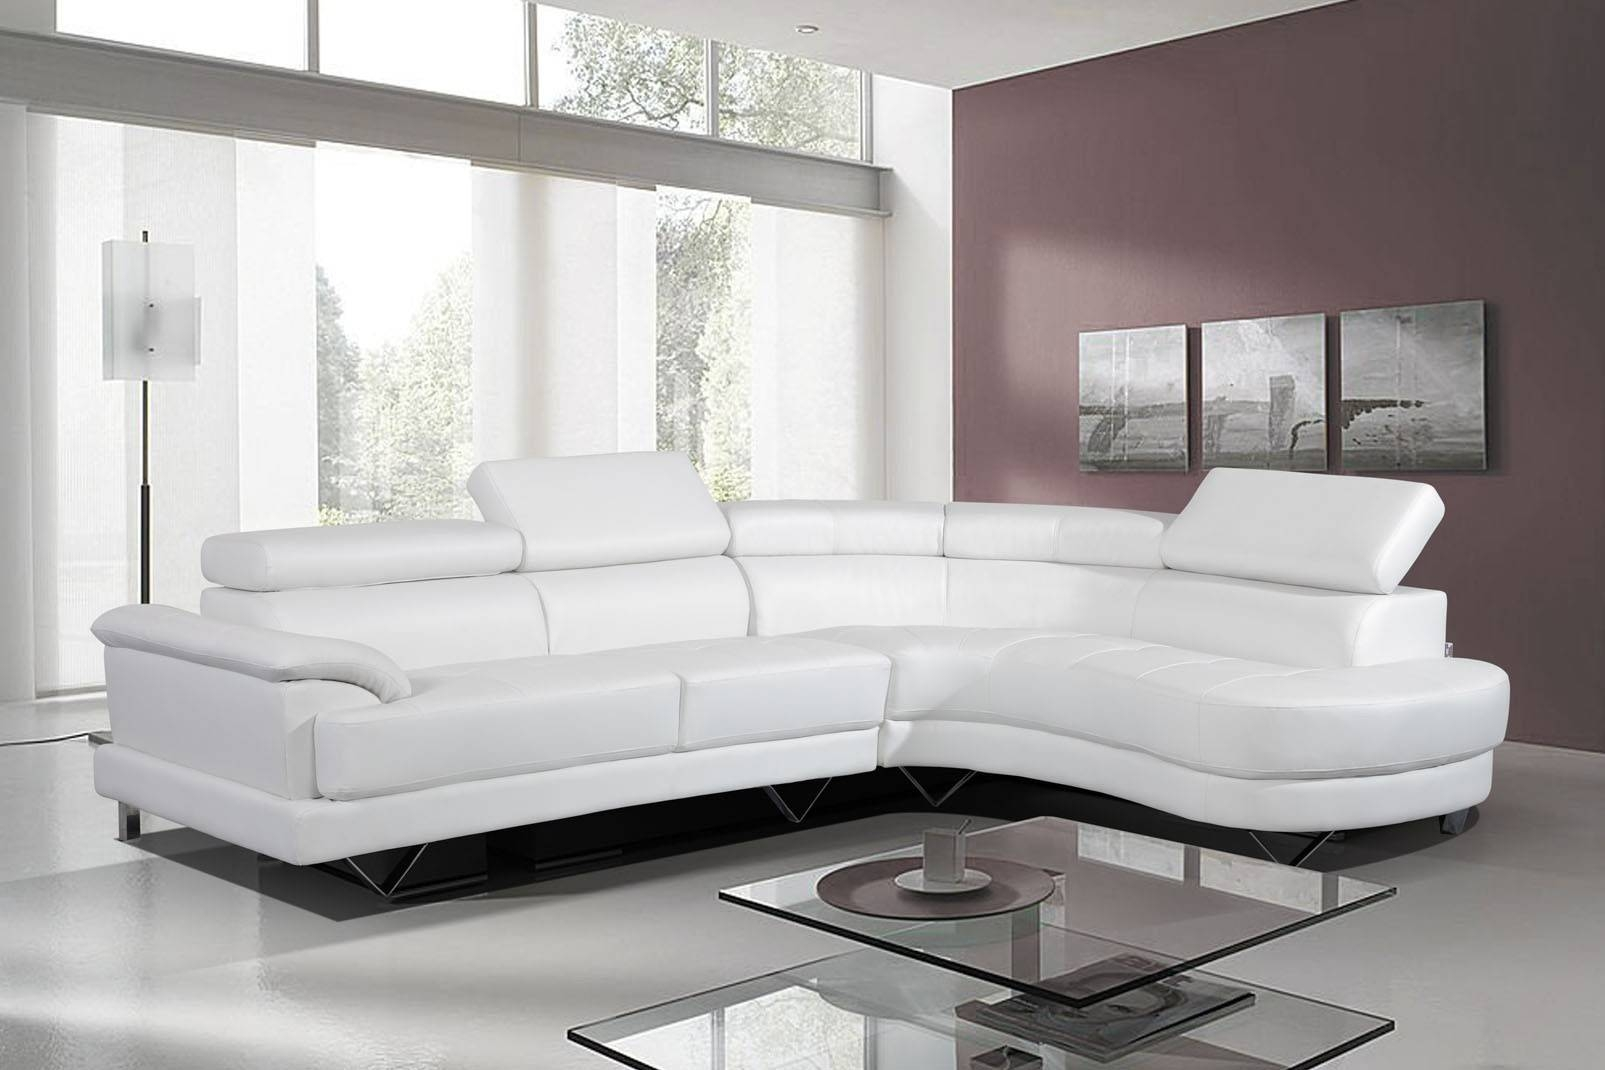 Stylish Leather Corner Sofa Cheap Leather Corner Sofa For Sale for Large Black Leather Corner Sofas (Image 28 of 30)